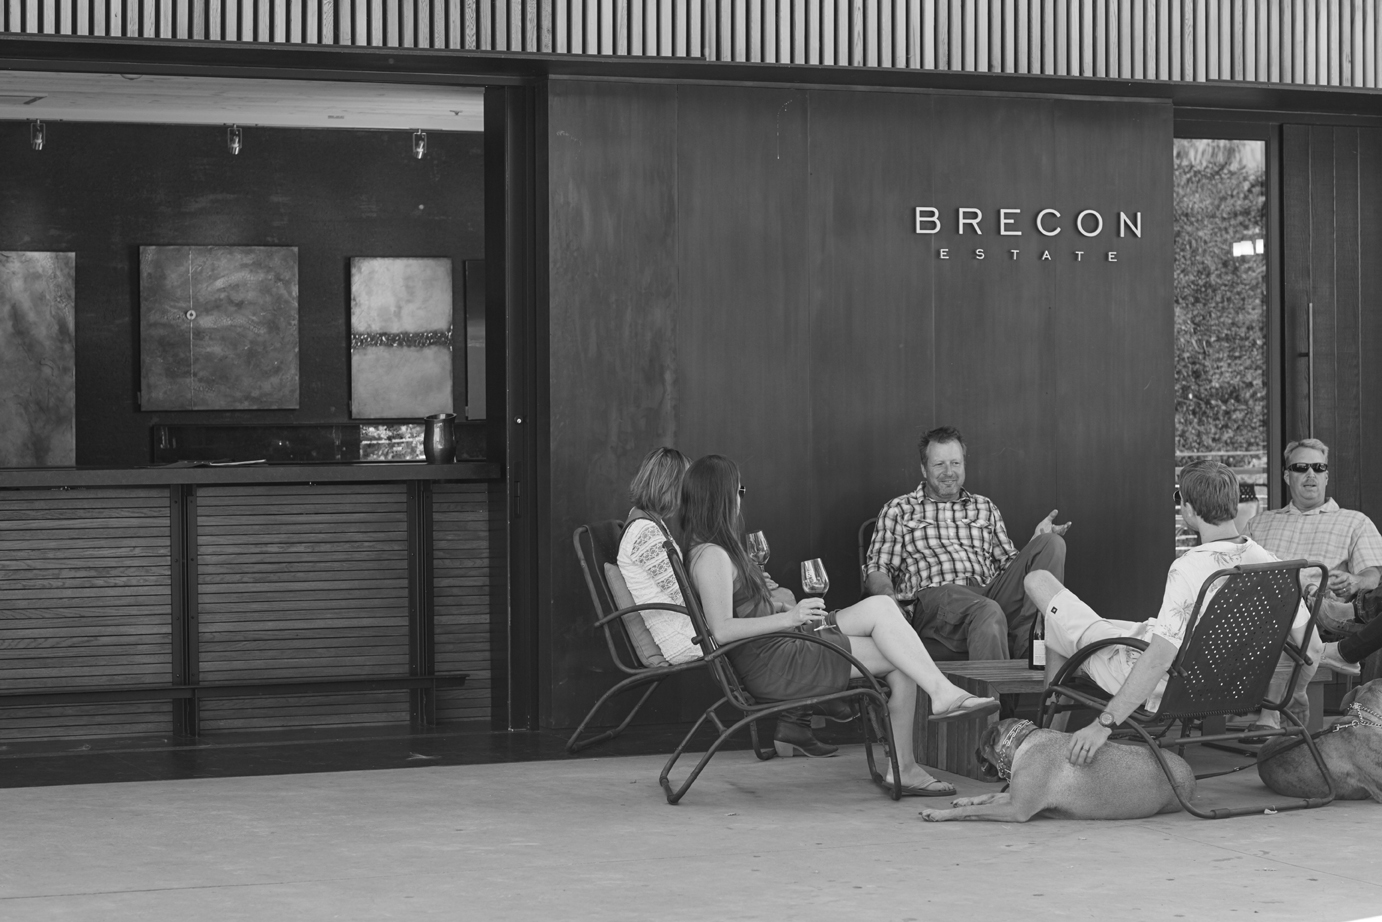 https://breconestate.com/uploads/images/header-and-footer/winecluboffers.jpg